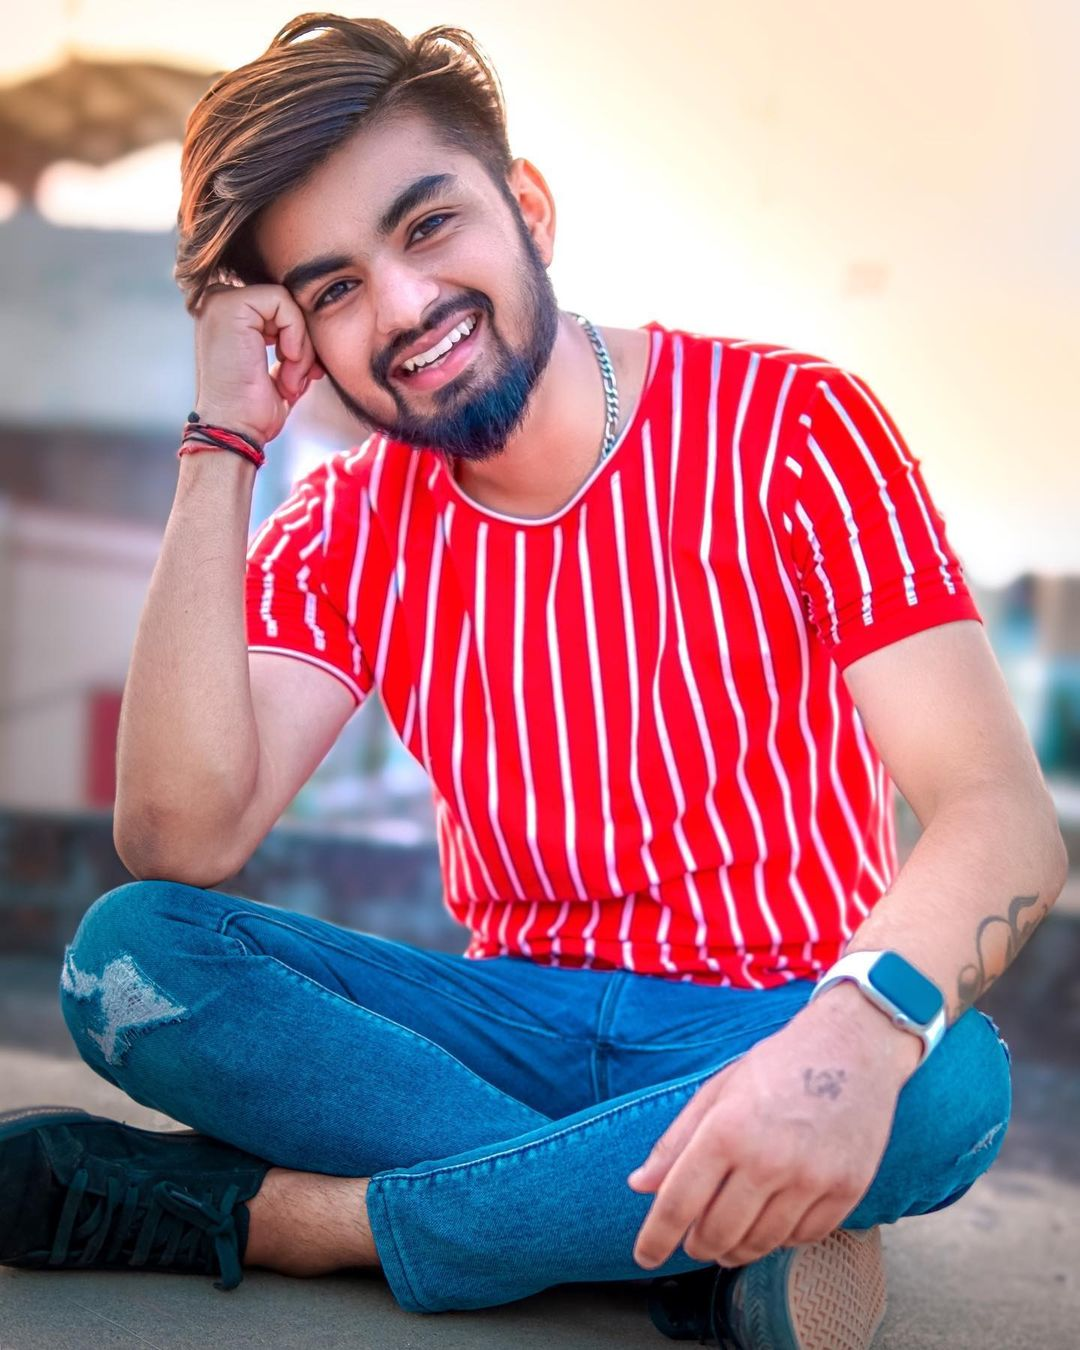 Rohit Singhania Profile  Contact Details (Phone number, Instagram, YouTube, TikTok, Email)